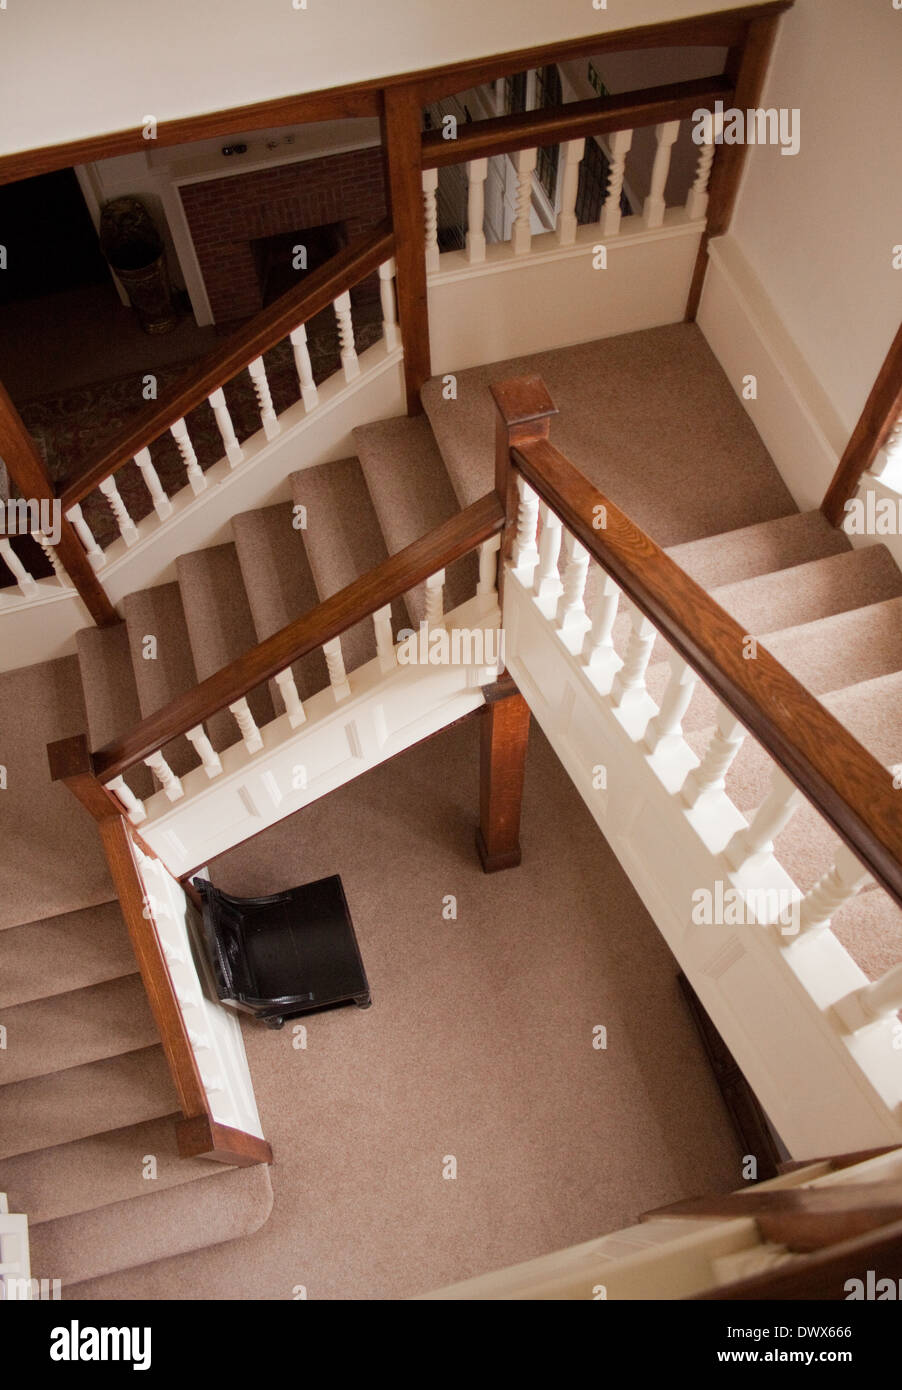 Staircase, Banister, And Balusters In Arts And Craft Style From England